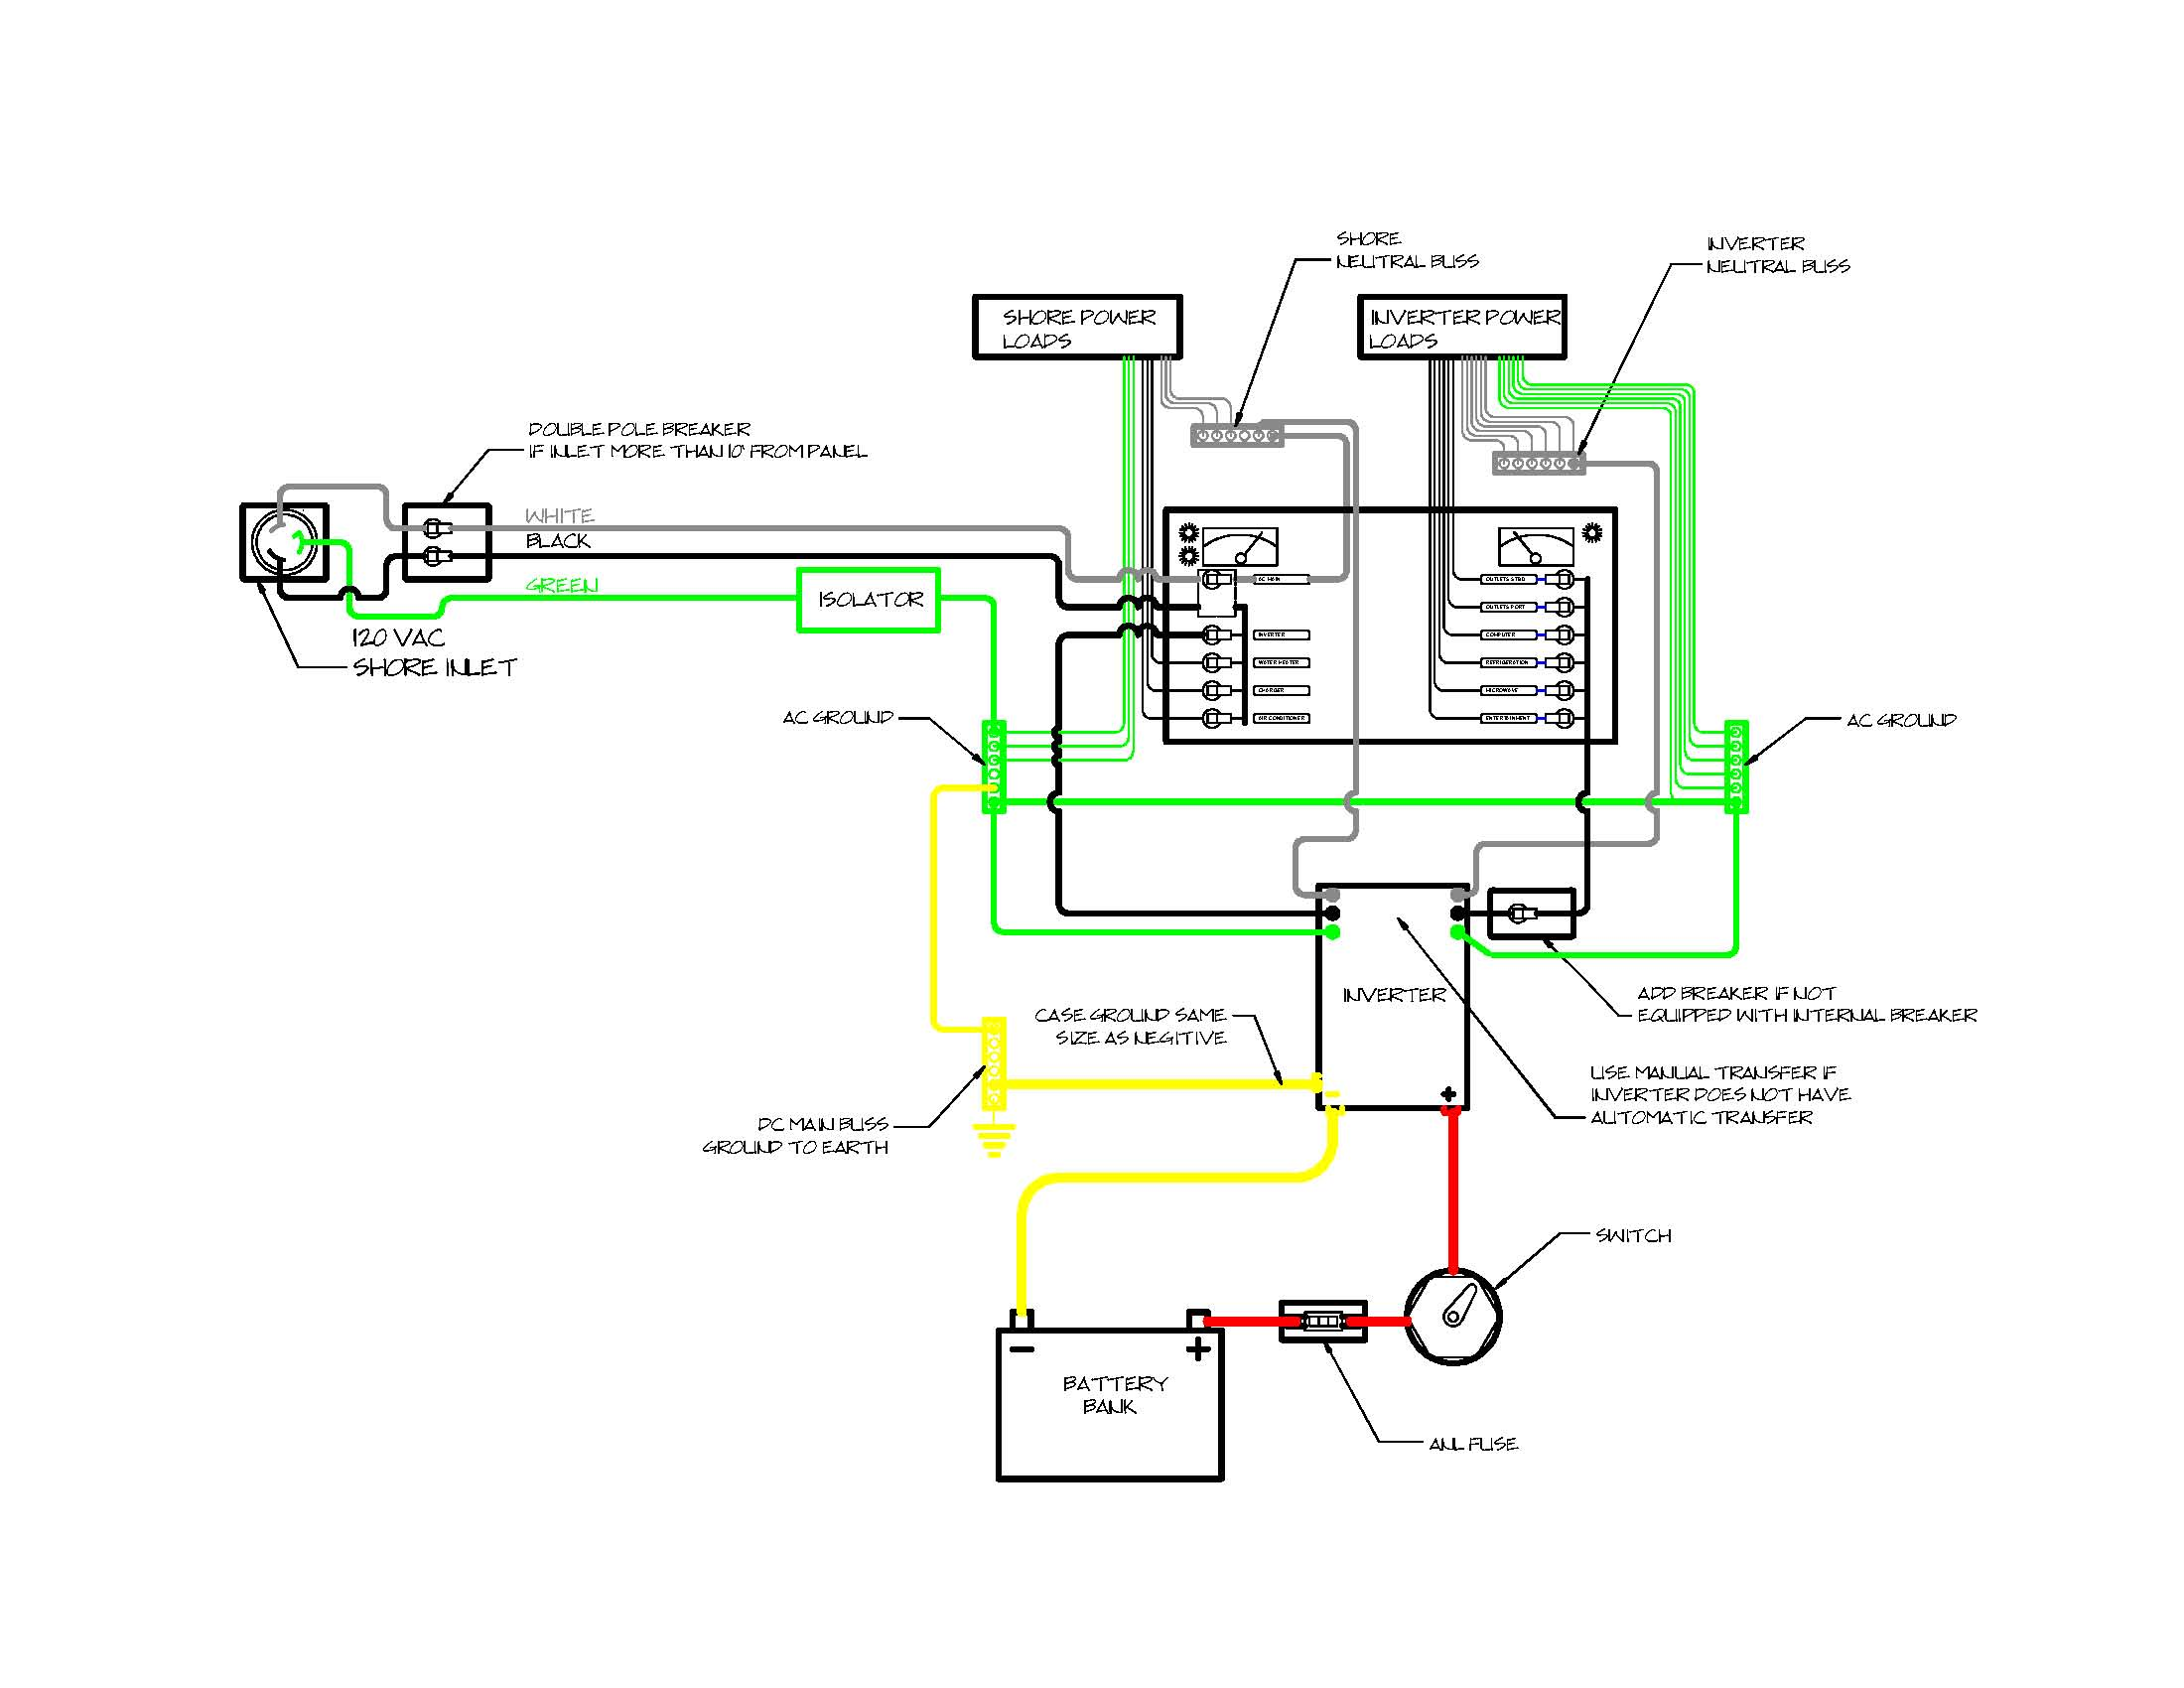 inverter wiring diagram for house 4500w inverter wiring diagram | better wiring diagram online